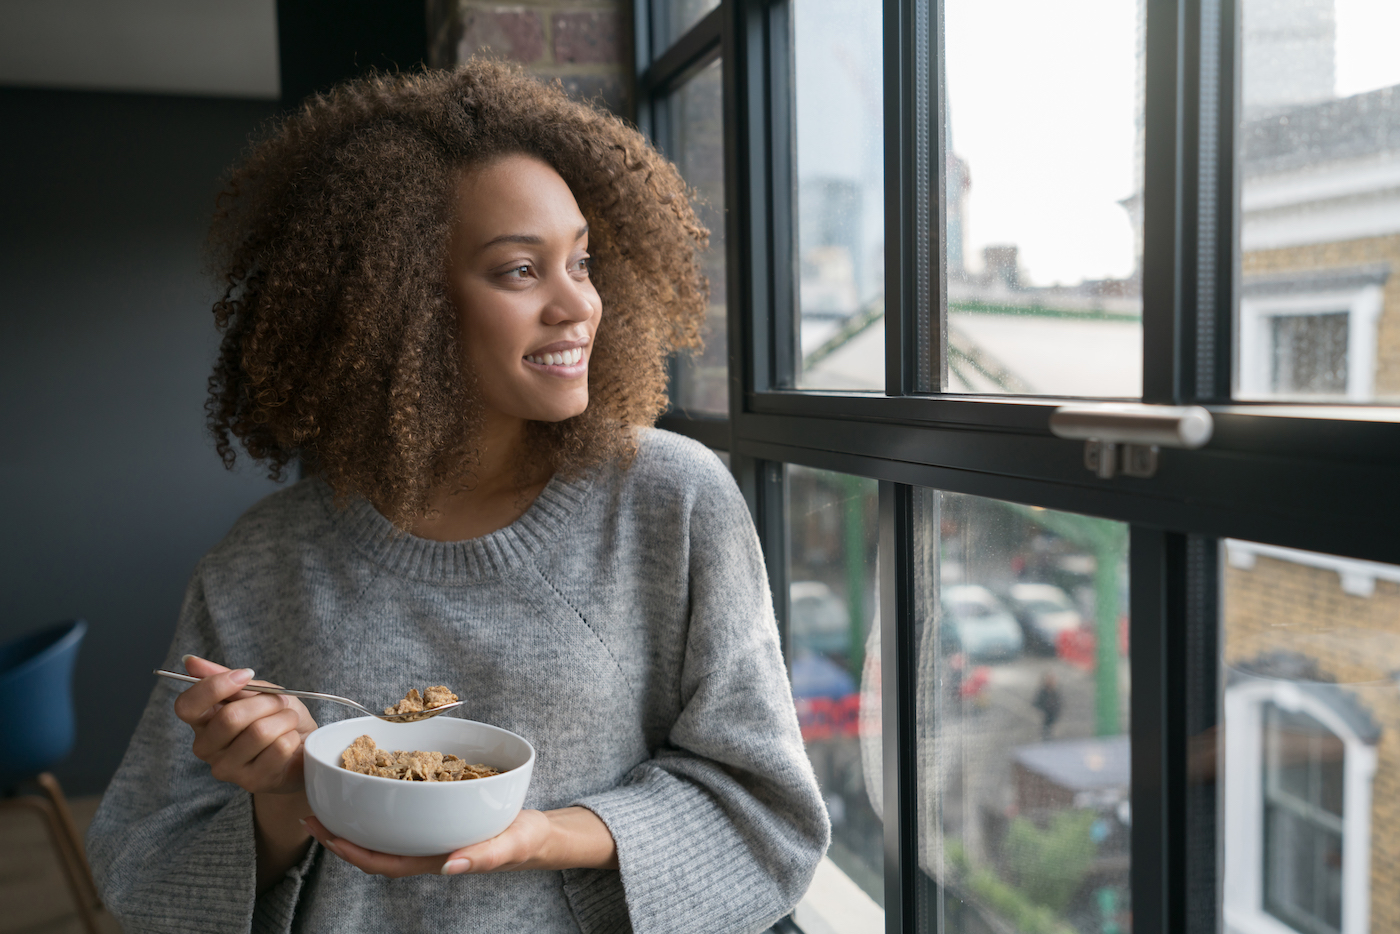 The 6 healthiest cereals to always stock in your pantry, according to a dietitian